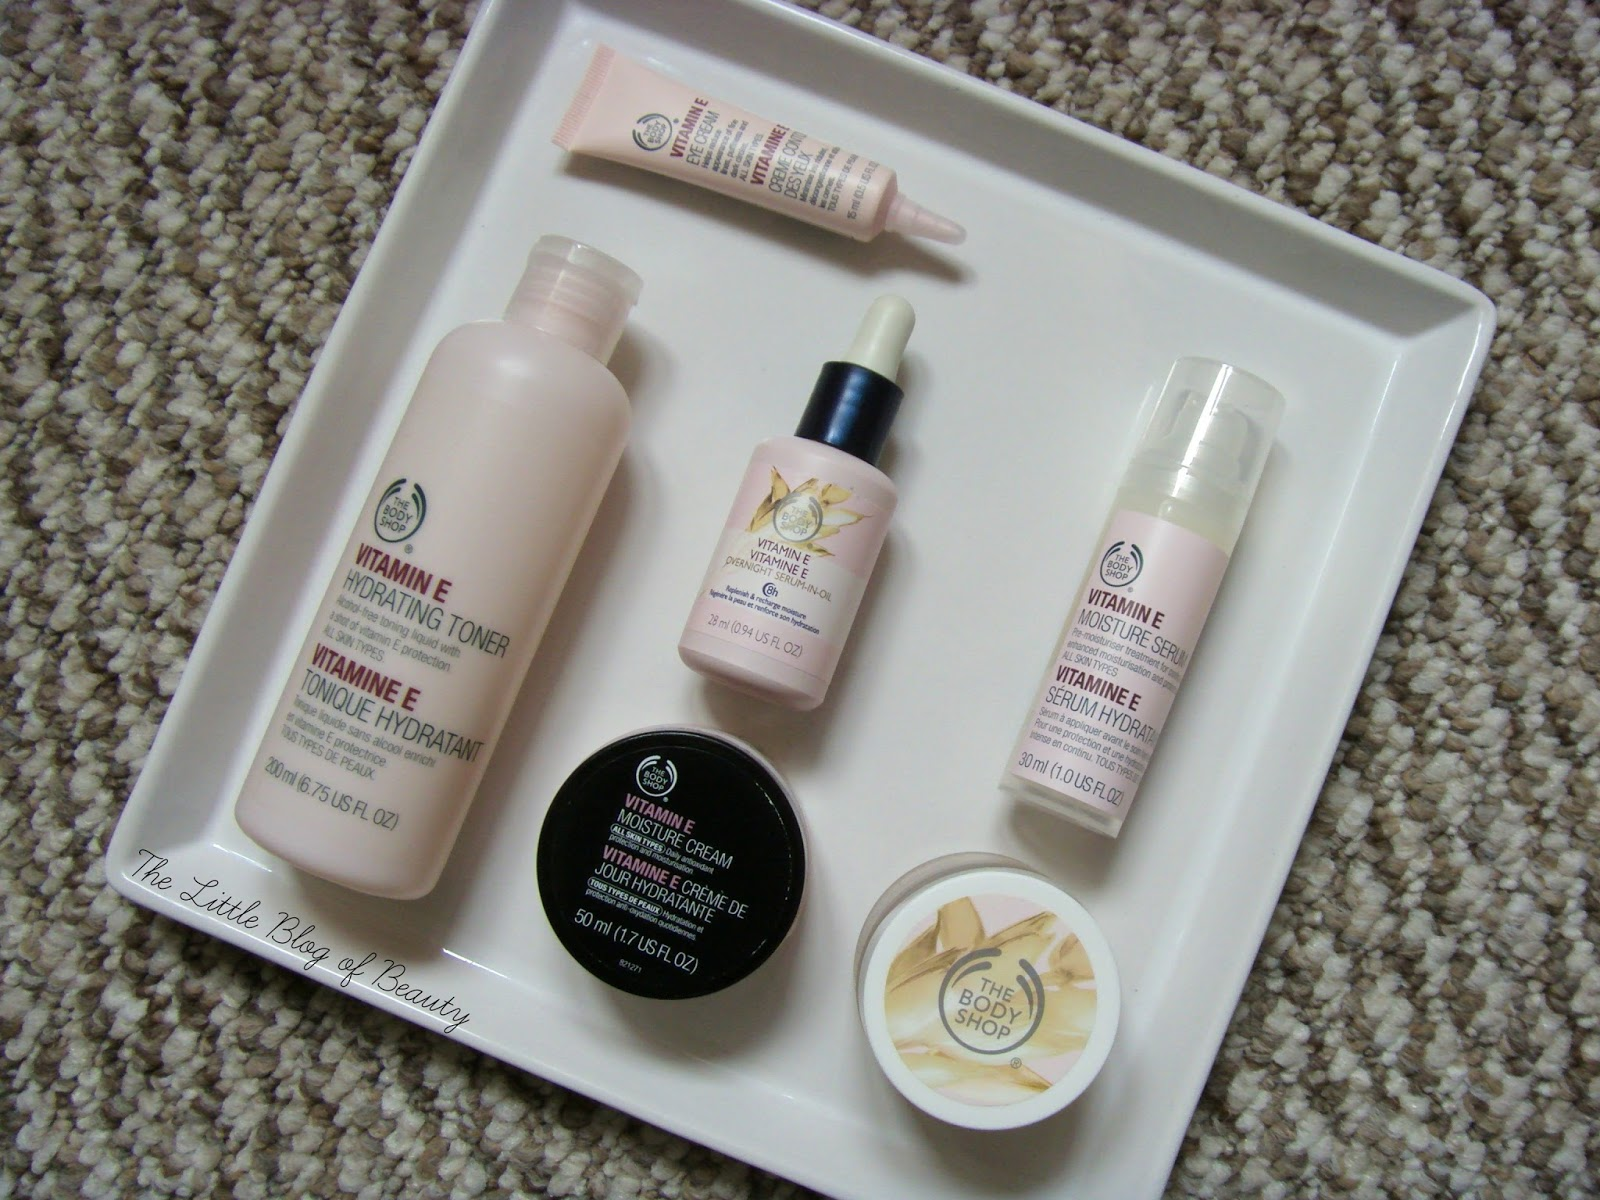 The Body Shop Vitamin E range